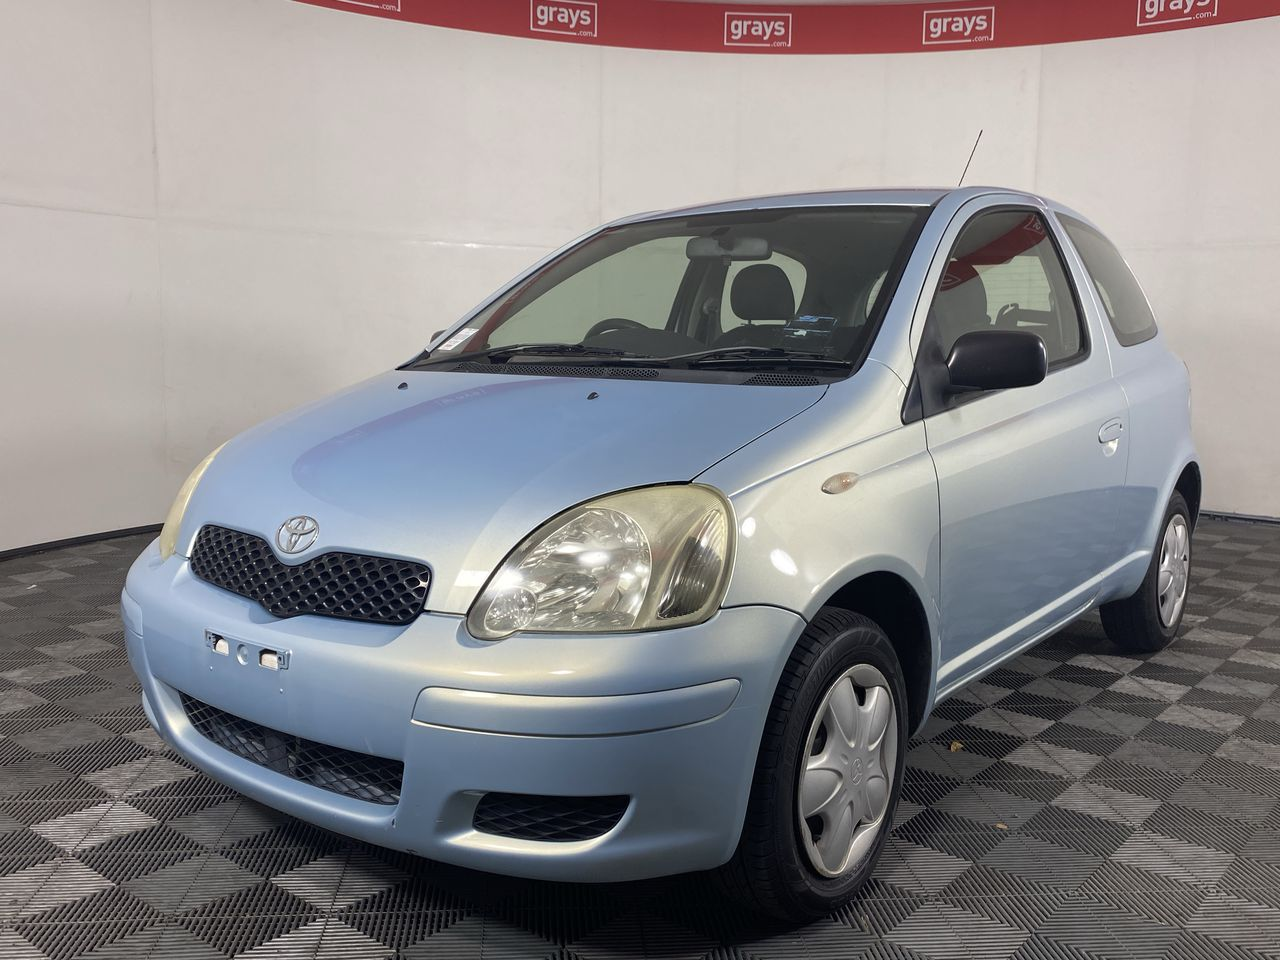 2003 Toyota Echo NCP10R Automatic Hatchback